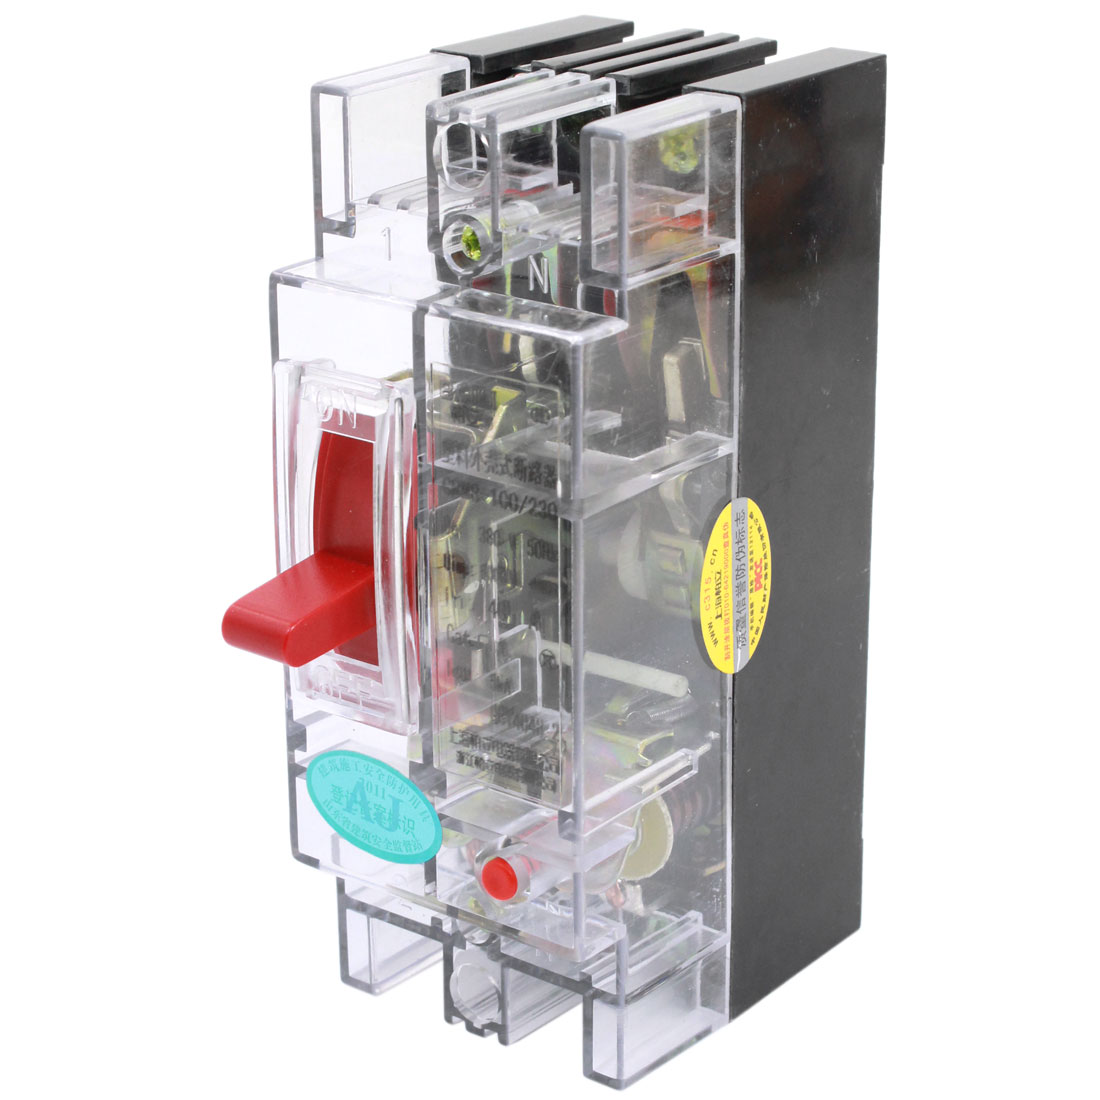 Transparent AC 380V 40A Amps 2P Moulded Case Circuit Breaker